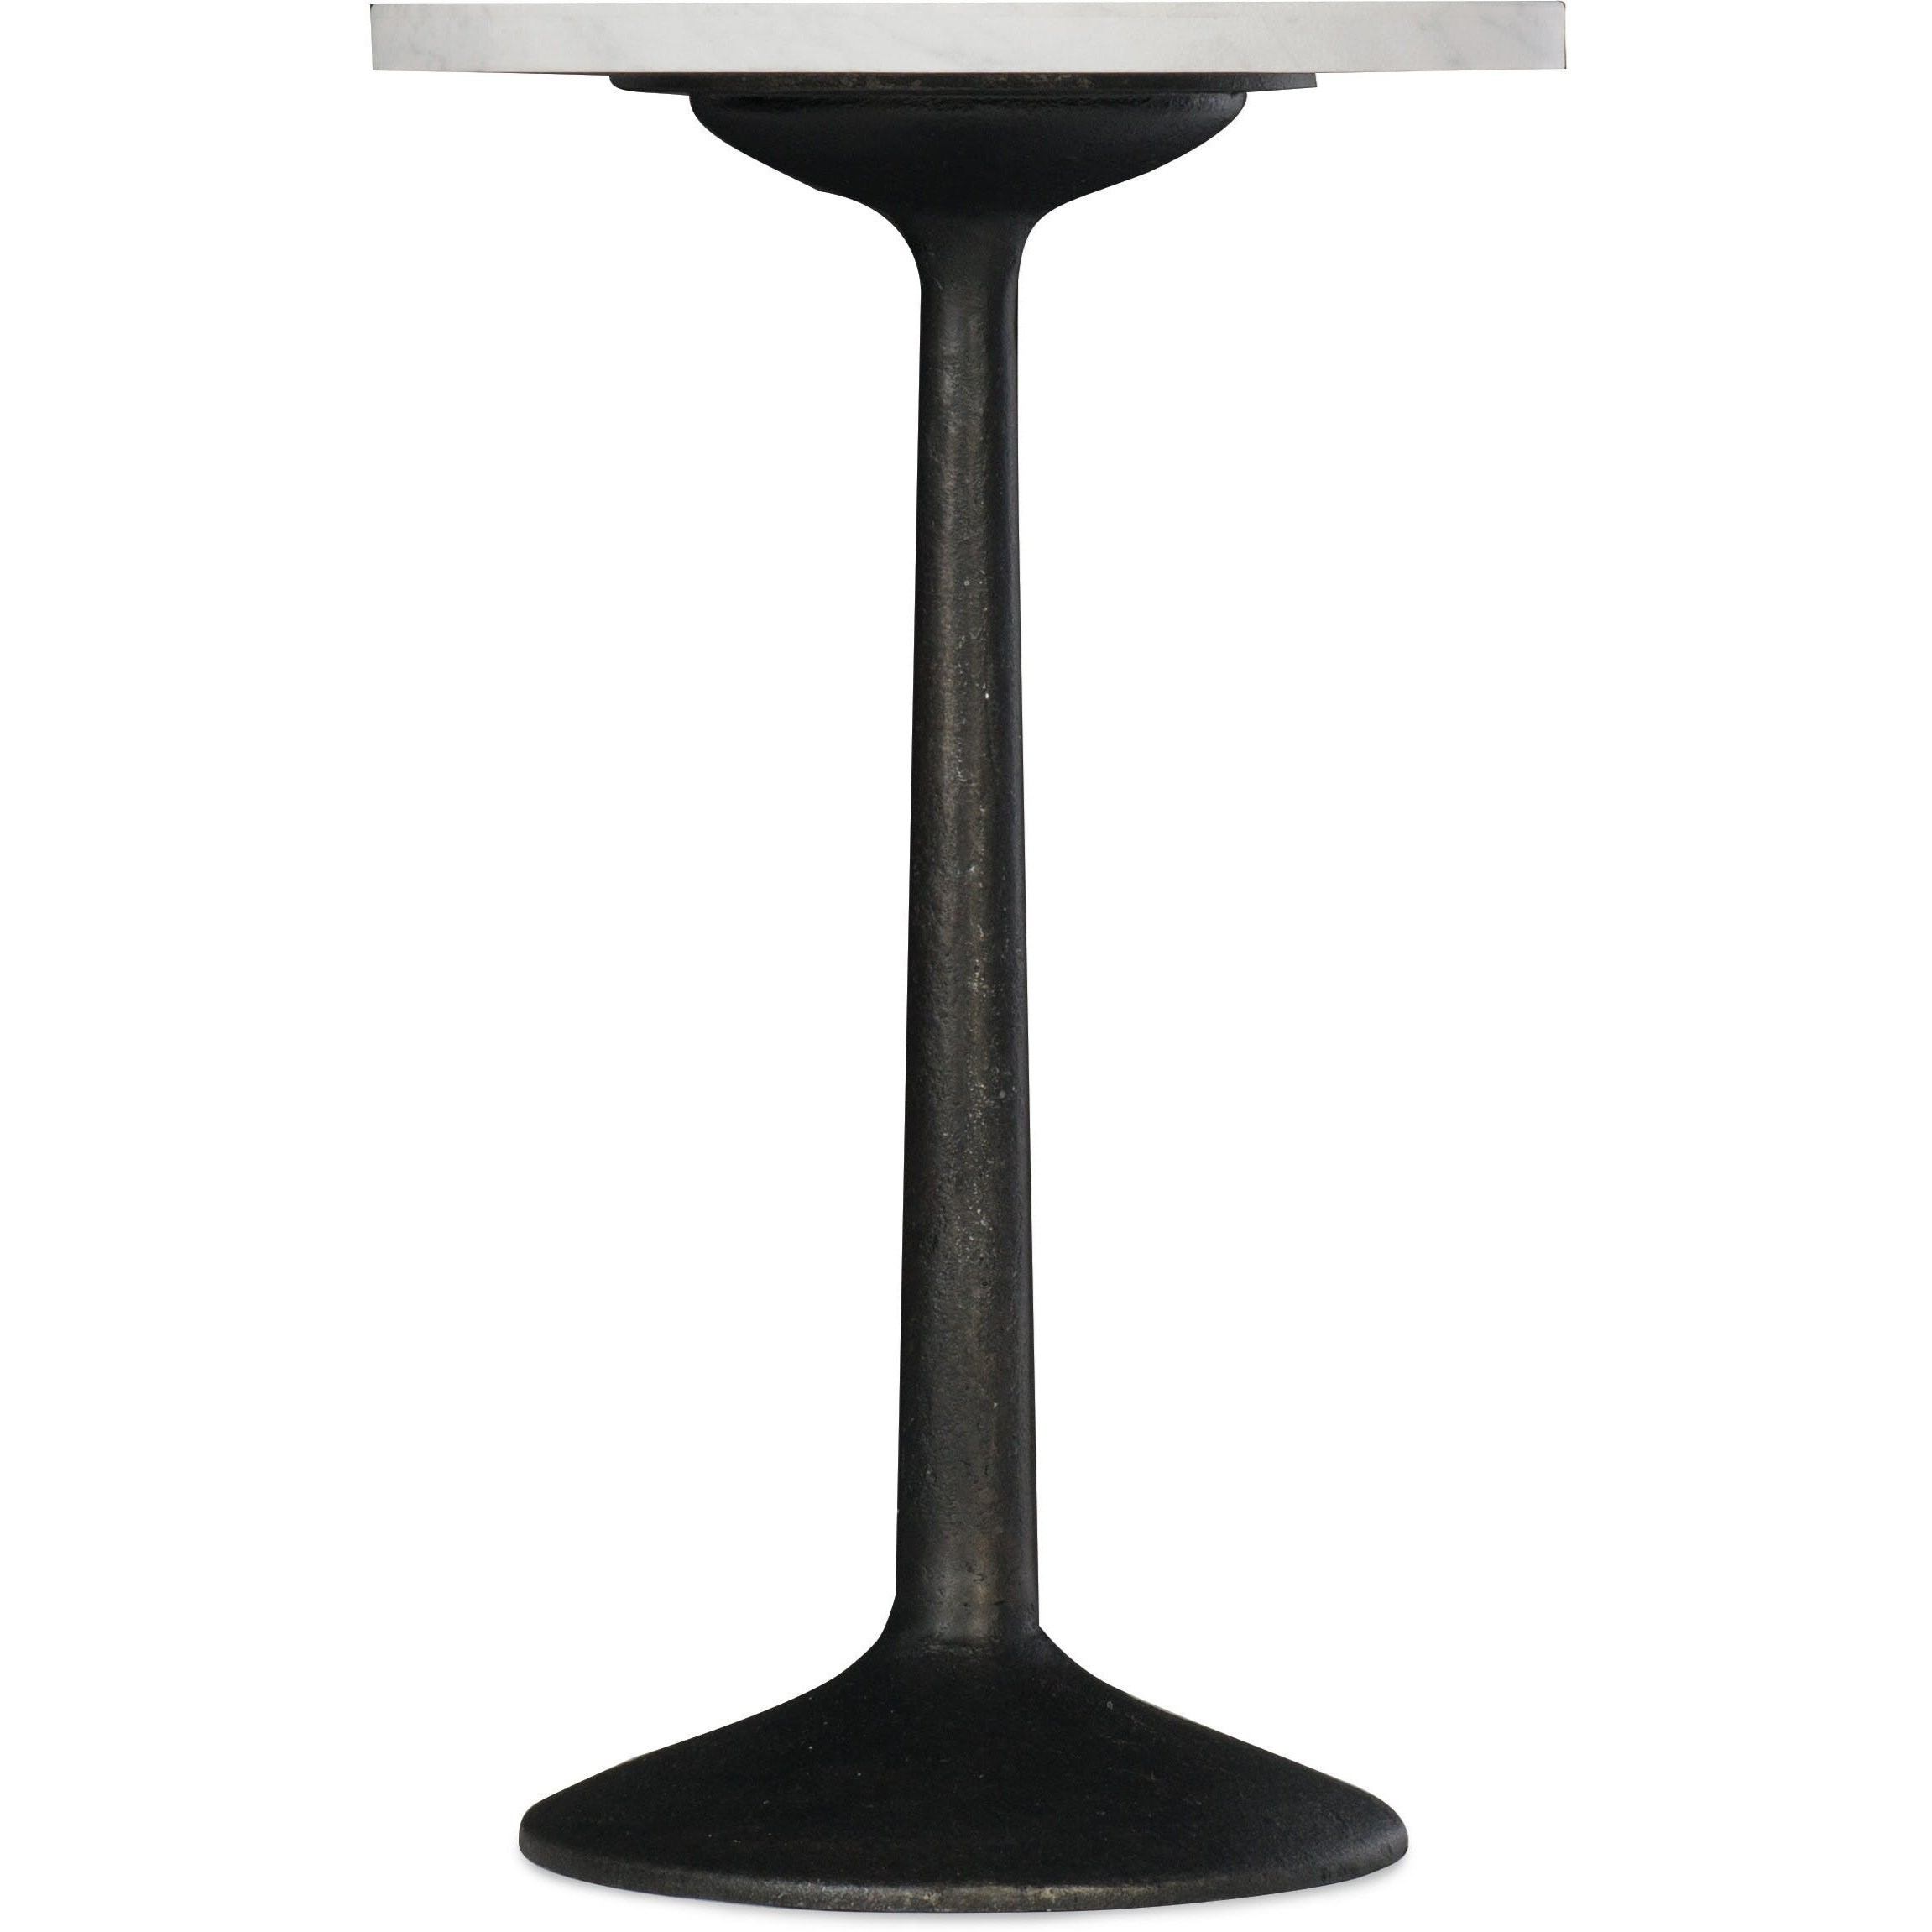 Beaumont Martini Table by Hooker Furniture at Alison Craig Home Furnishings